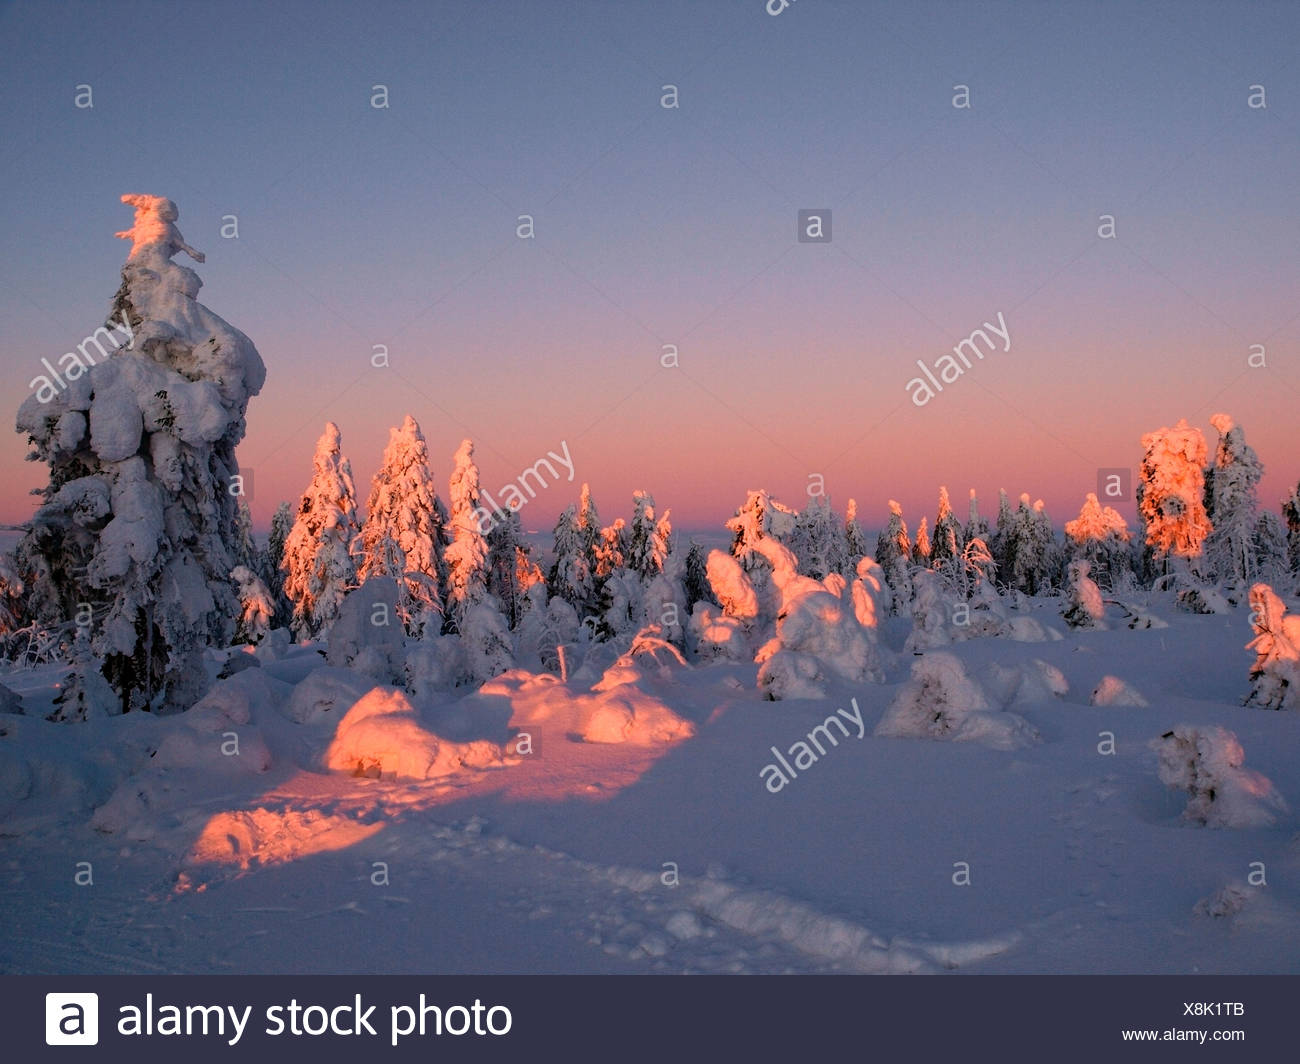 snow-covered light conifer forest in the light of the setting sun, Czech Republic, Erz Mountains, Keilberg - Stock Image